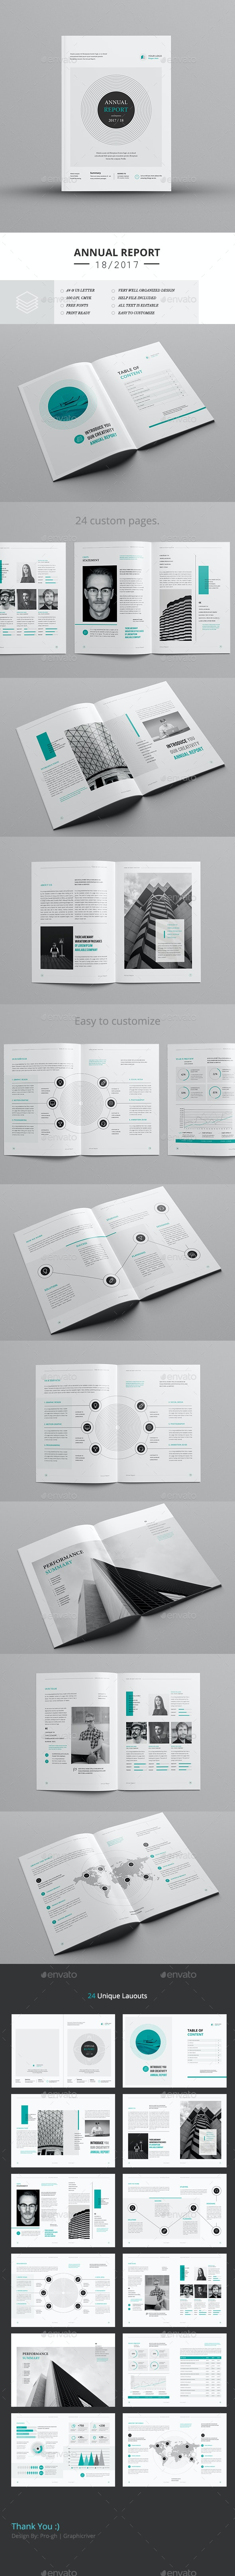 Annual Report A4 & Us Letter - Corporate Brochures